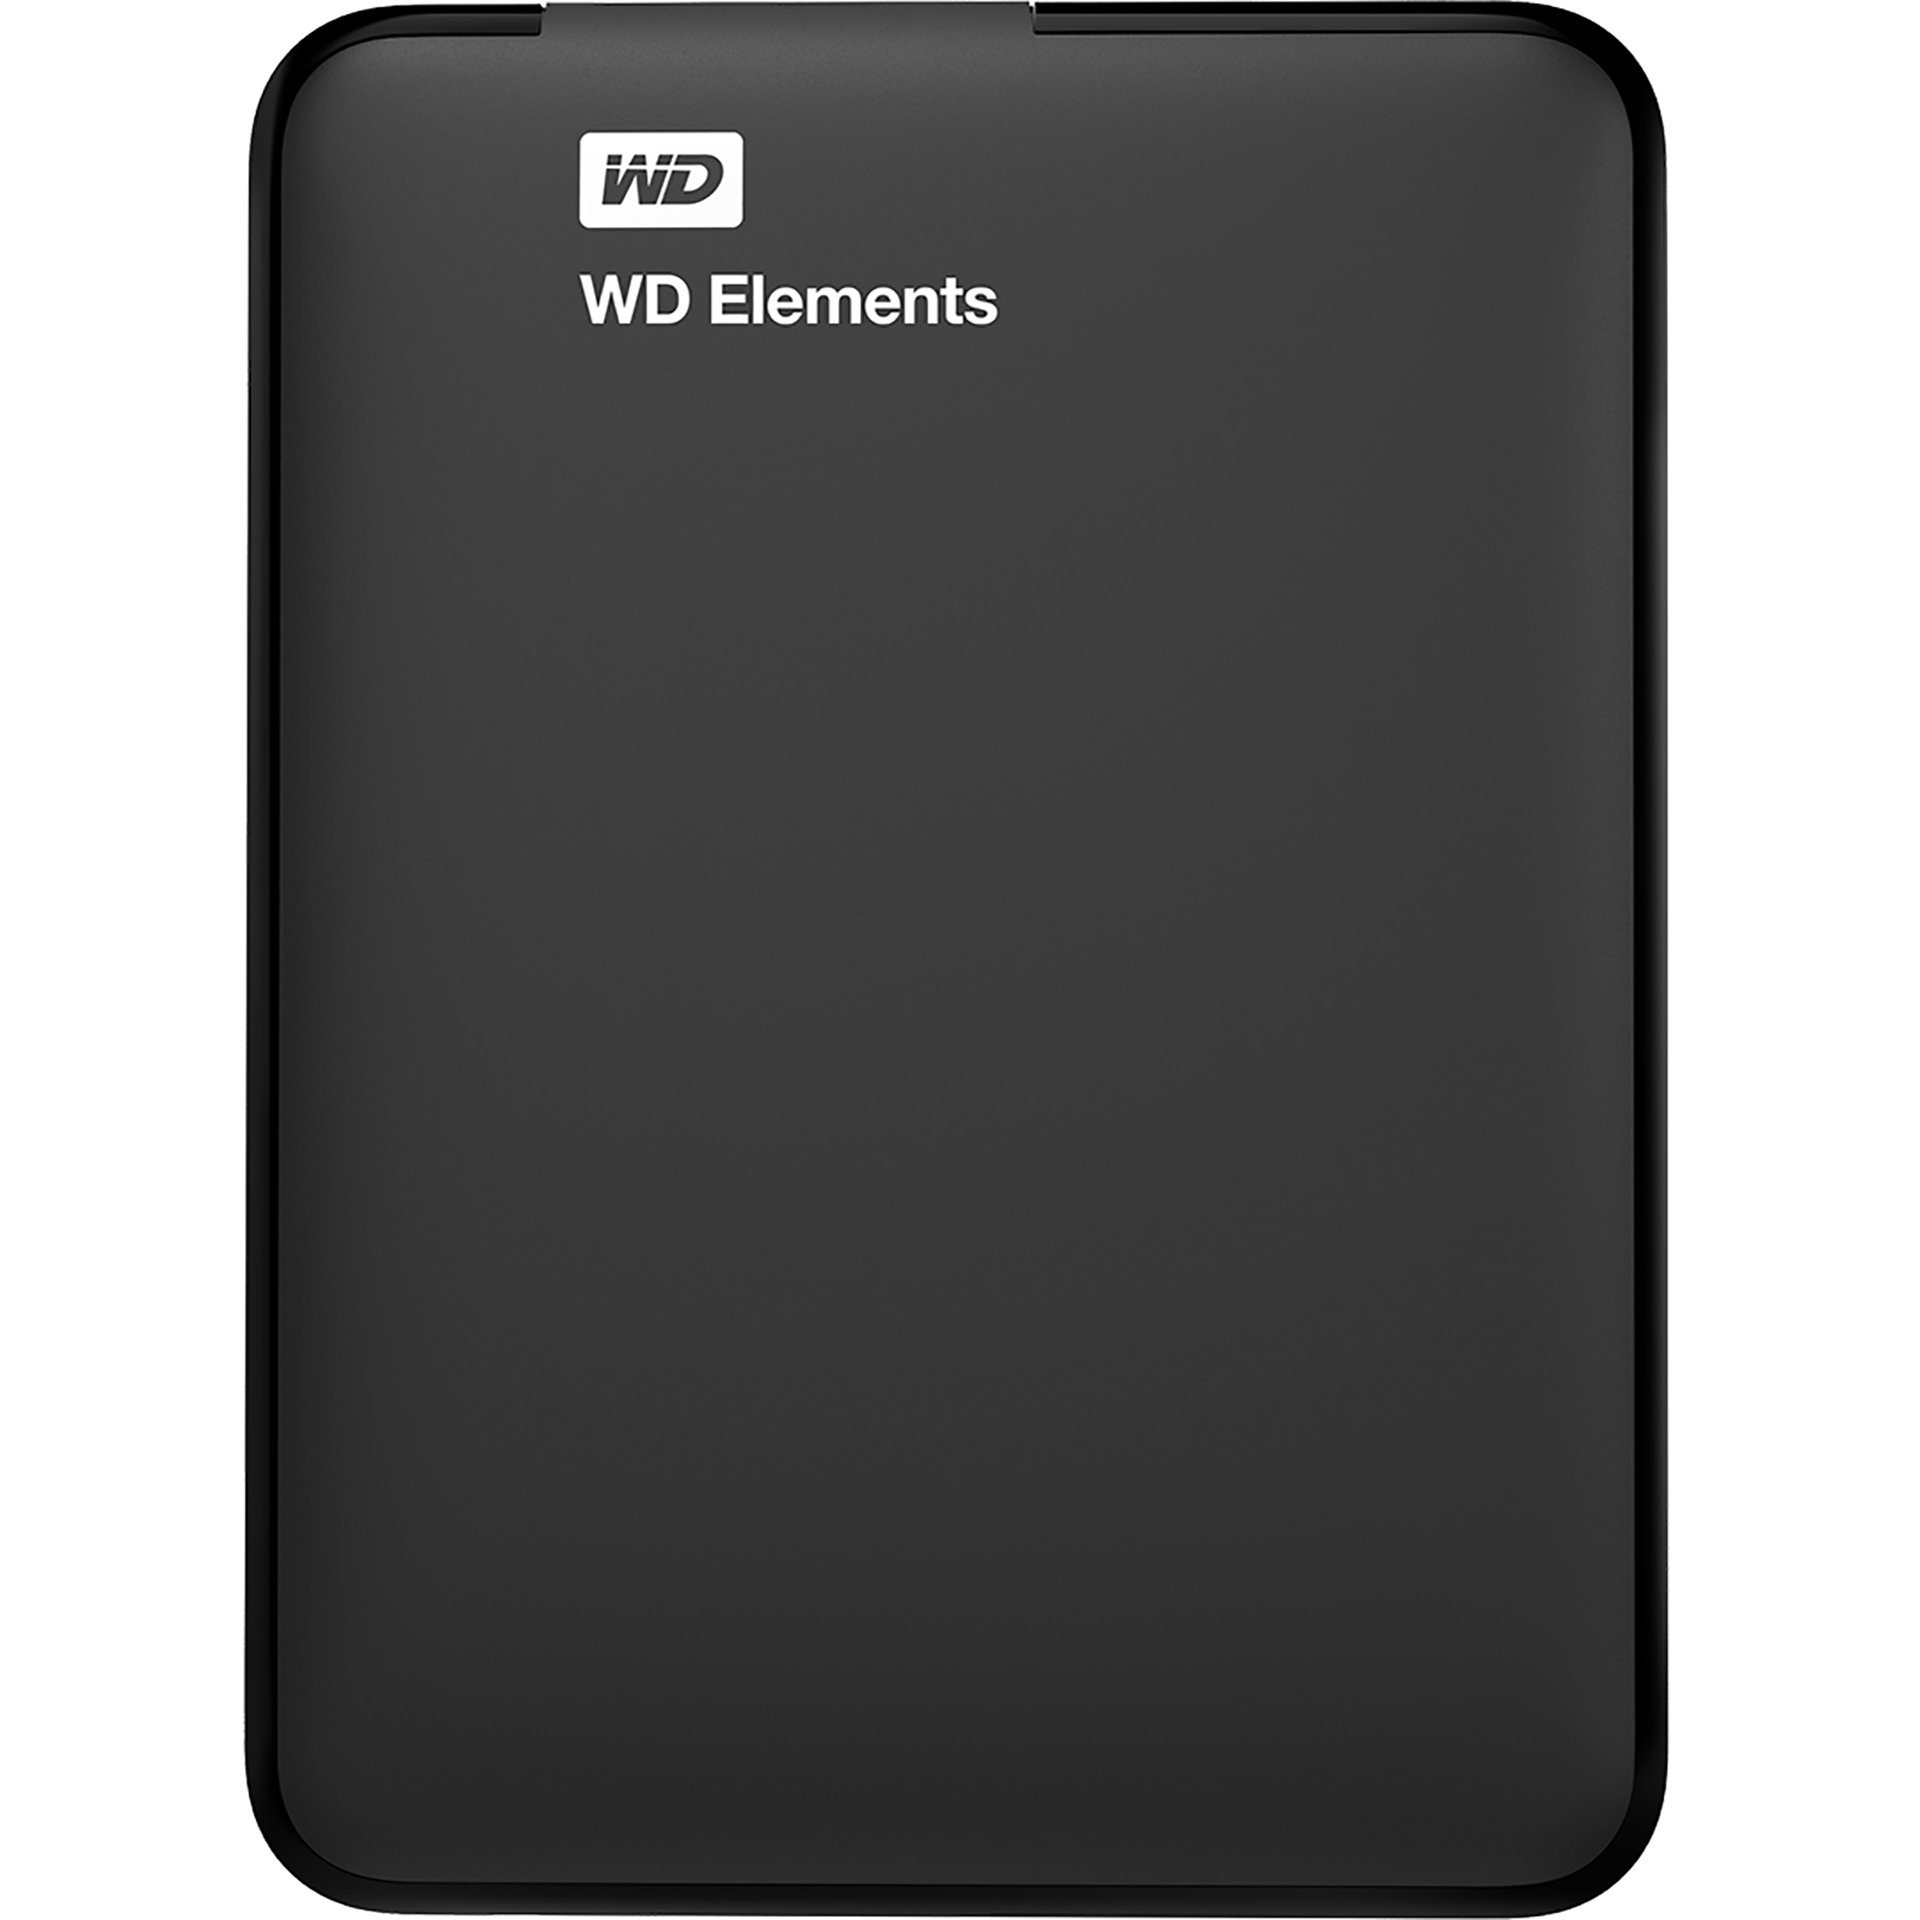 väline kõvaketas Western Digital Elements, 1 TB